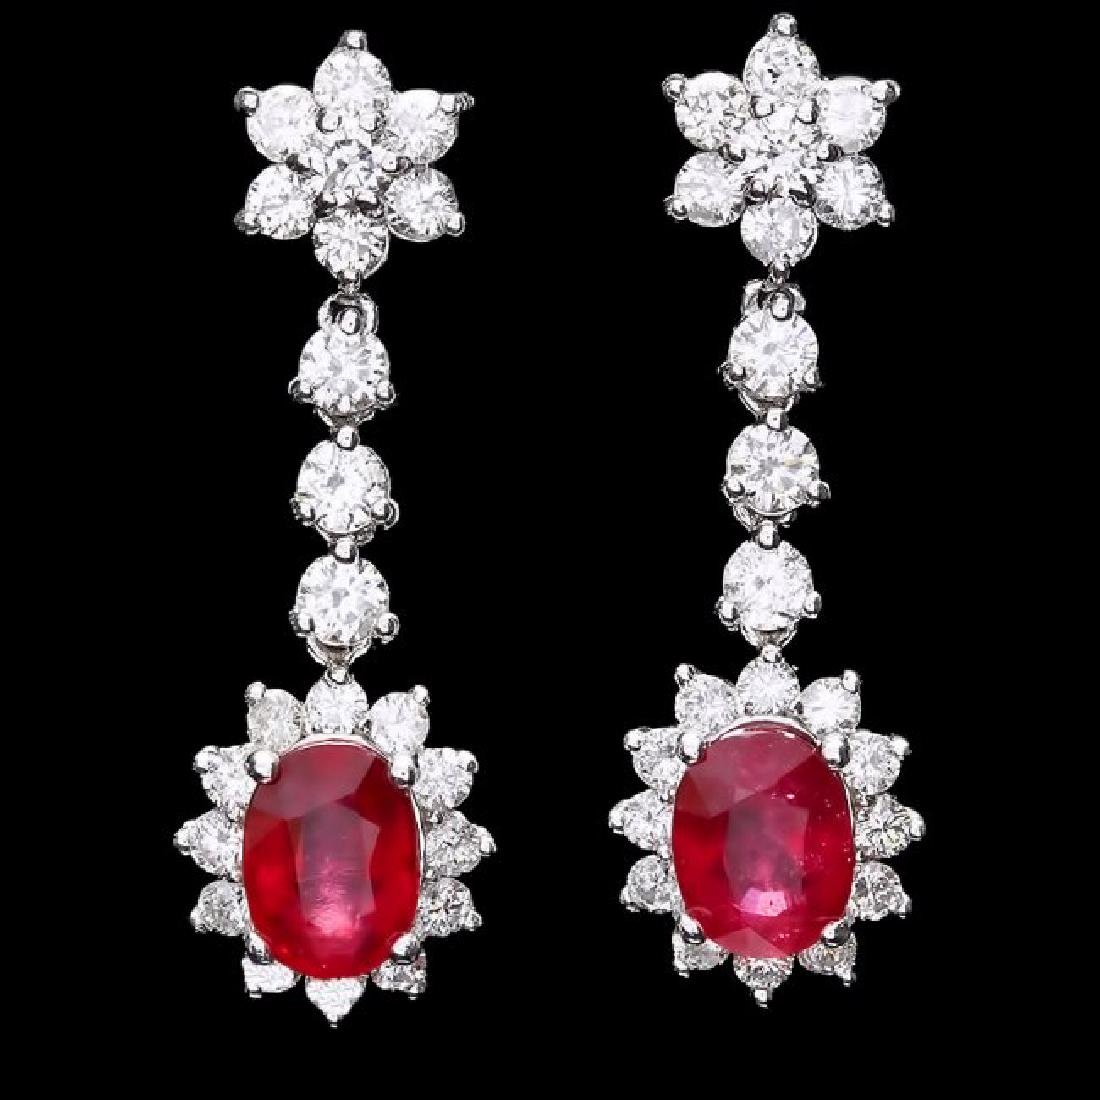 14k Gold 4.00ct Ruby 2.50ct Diamond Earrings